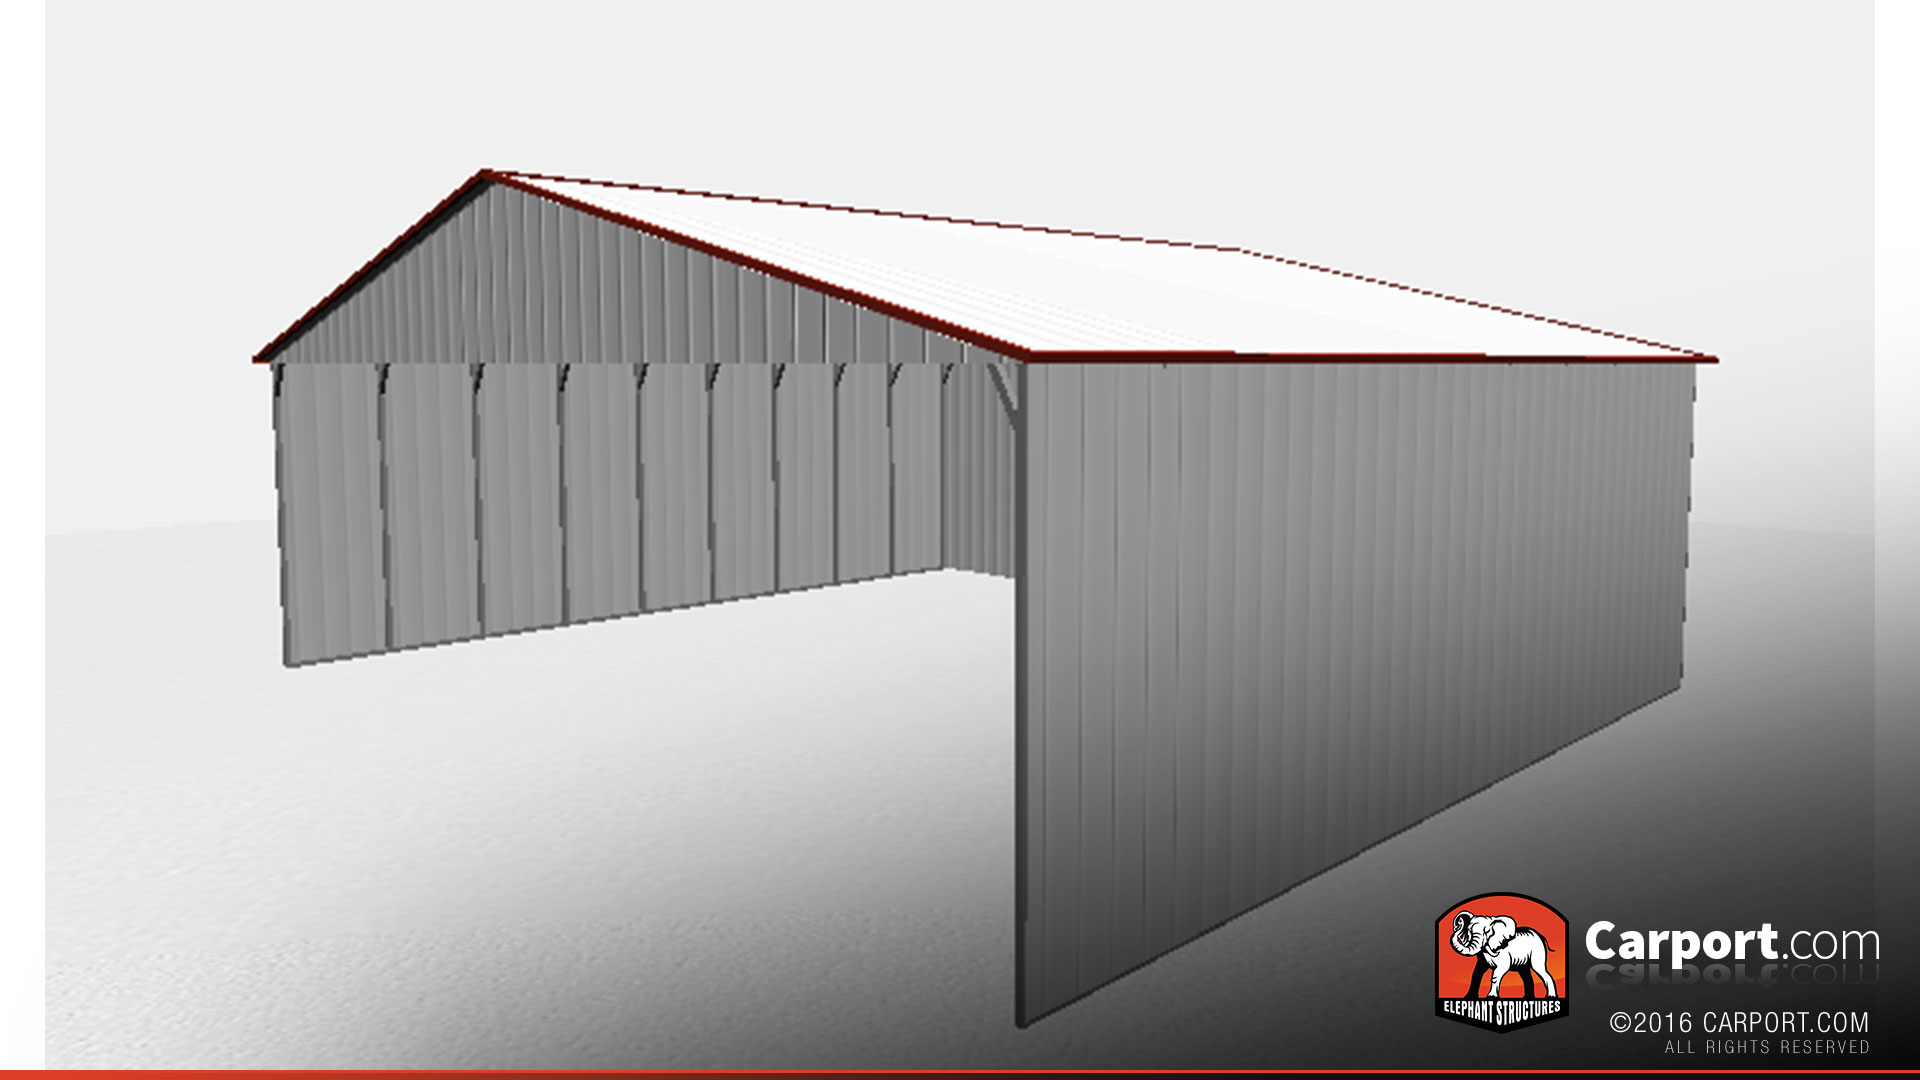 40 X 36 X 12 Partially Enclosed Commercial Carport